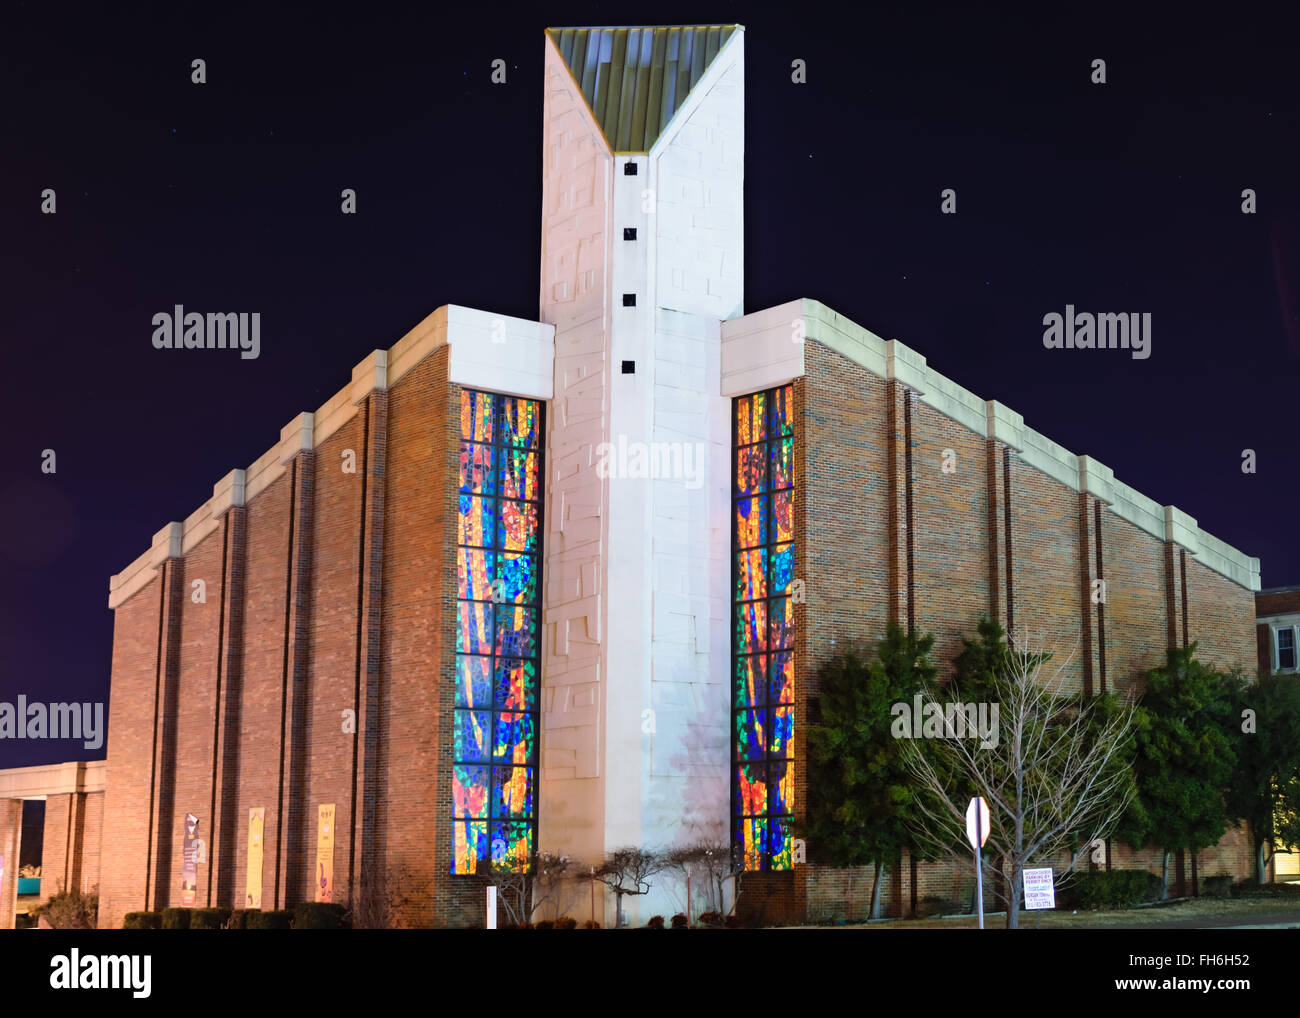 Church exterior with illuminated stained glass in Muskogee, Oklahoma Stock Photo